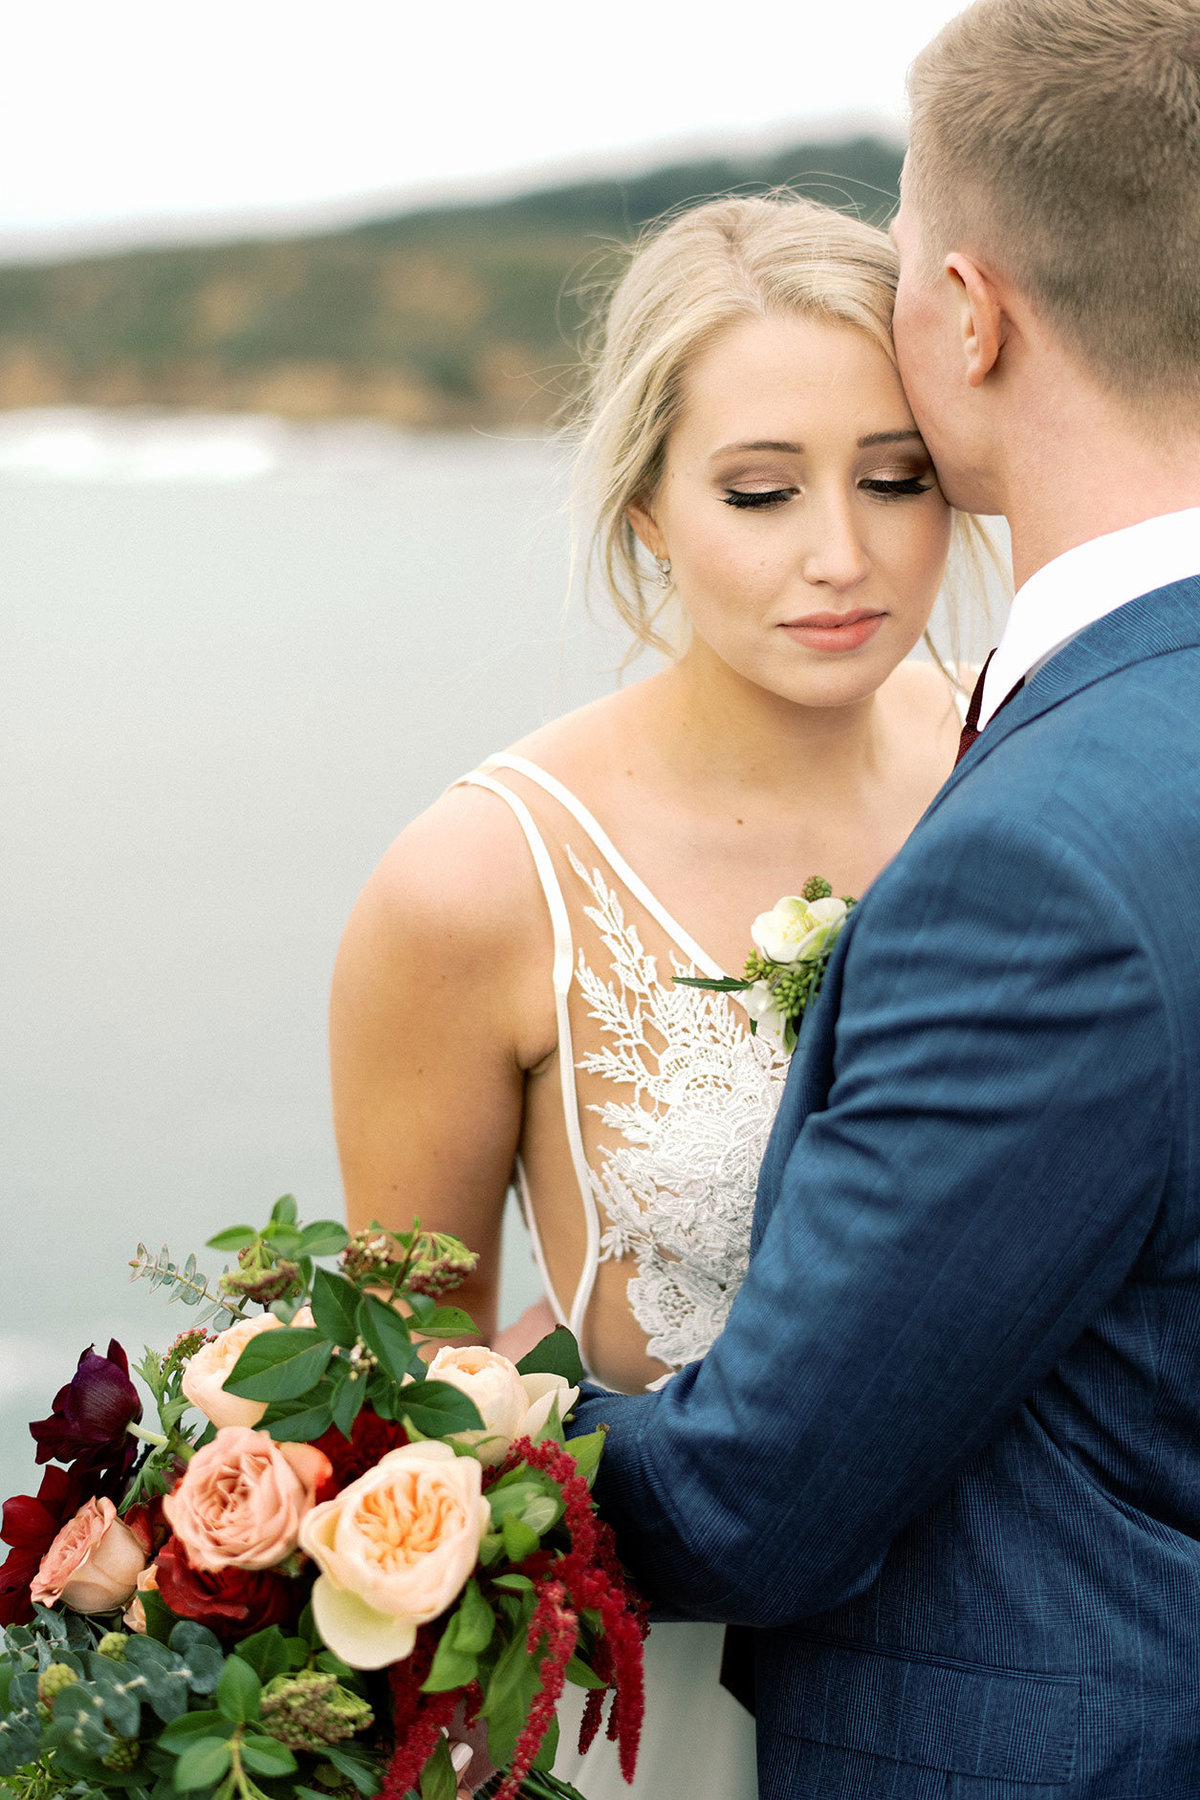 Montana-de-Oro-Elopement-styled-by-San-Luis-Obispo-Wedding-Planner-Embark-Event-Design-10